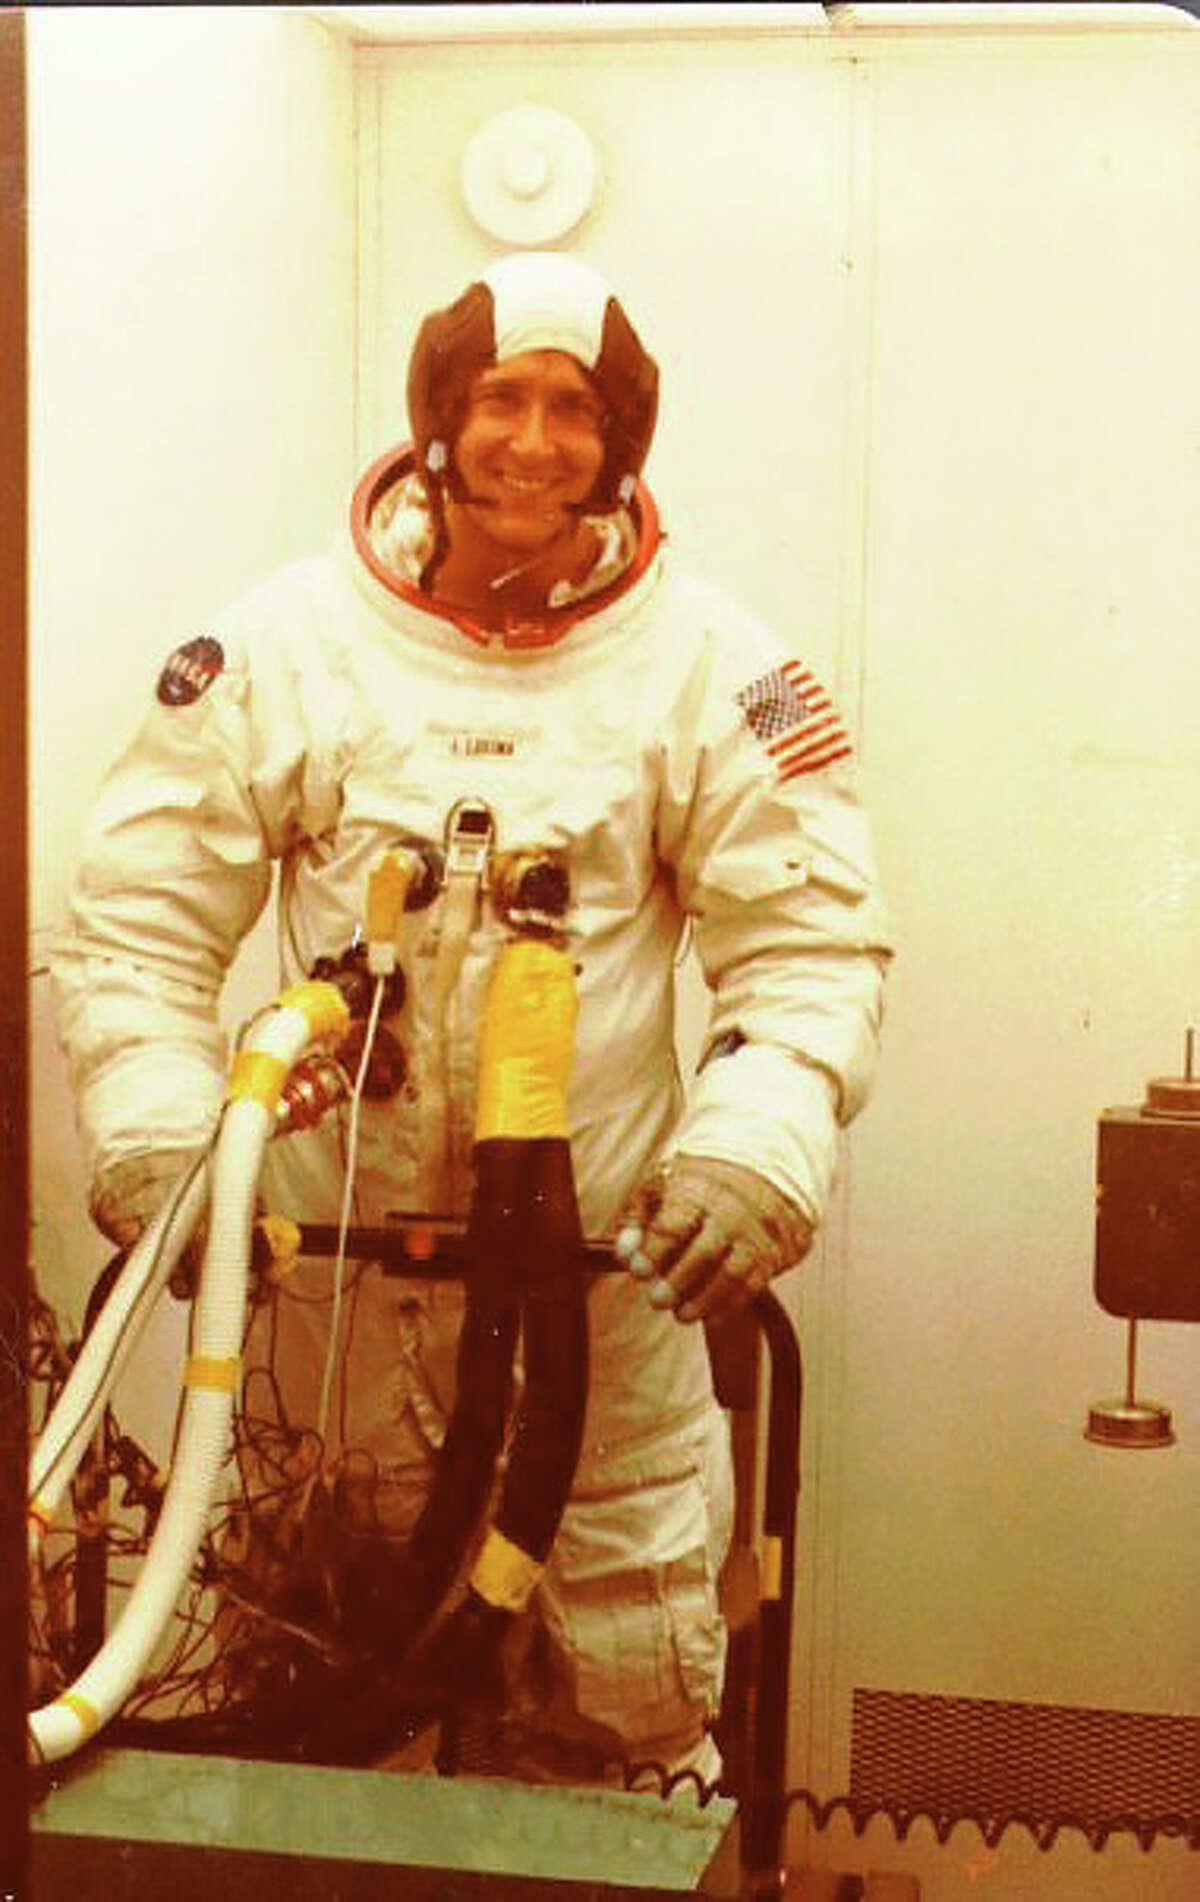 Lawrence Kuznetz: On the console at Mission Control.Editor's note: Dr. Lawrence H. Kuznetz is a veteran of the space program. He was a flight controller during Apollo, helped build the space shuttles and was Life Science Experiment Manager for the International Space Station. He is also project leader for the team designing the spacesuits that could be used on the human exploration of Mars.